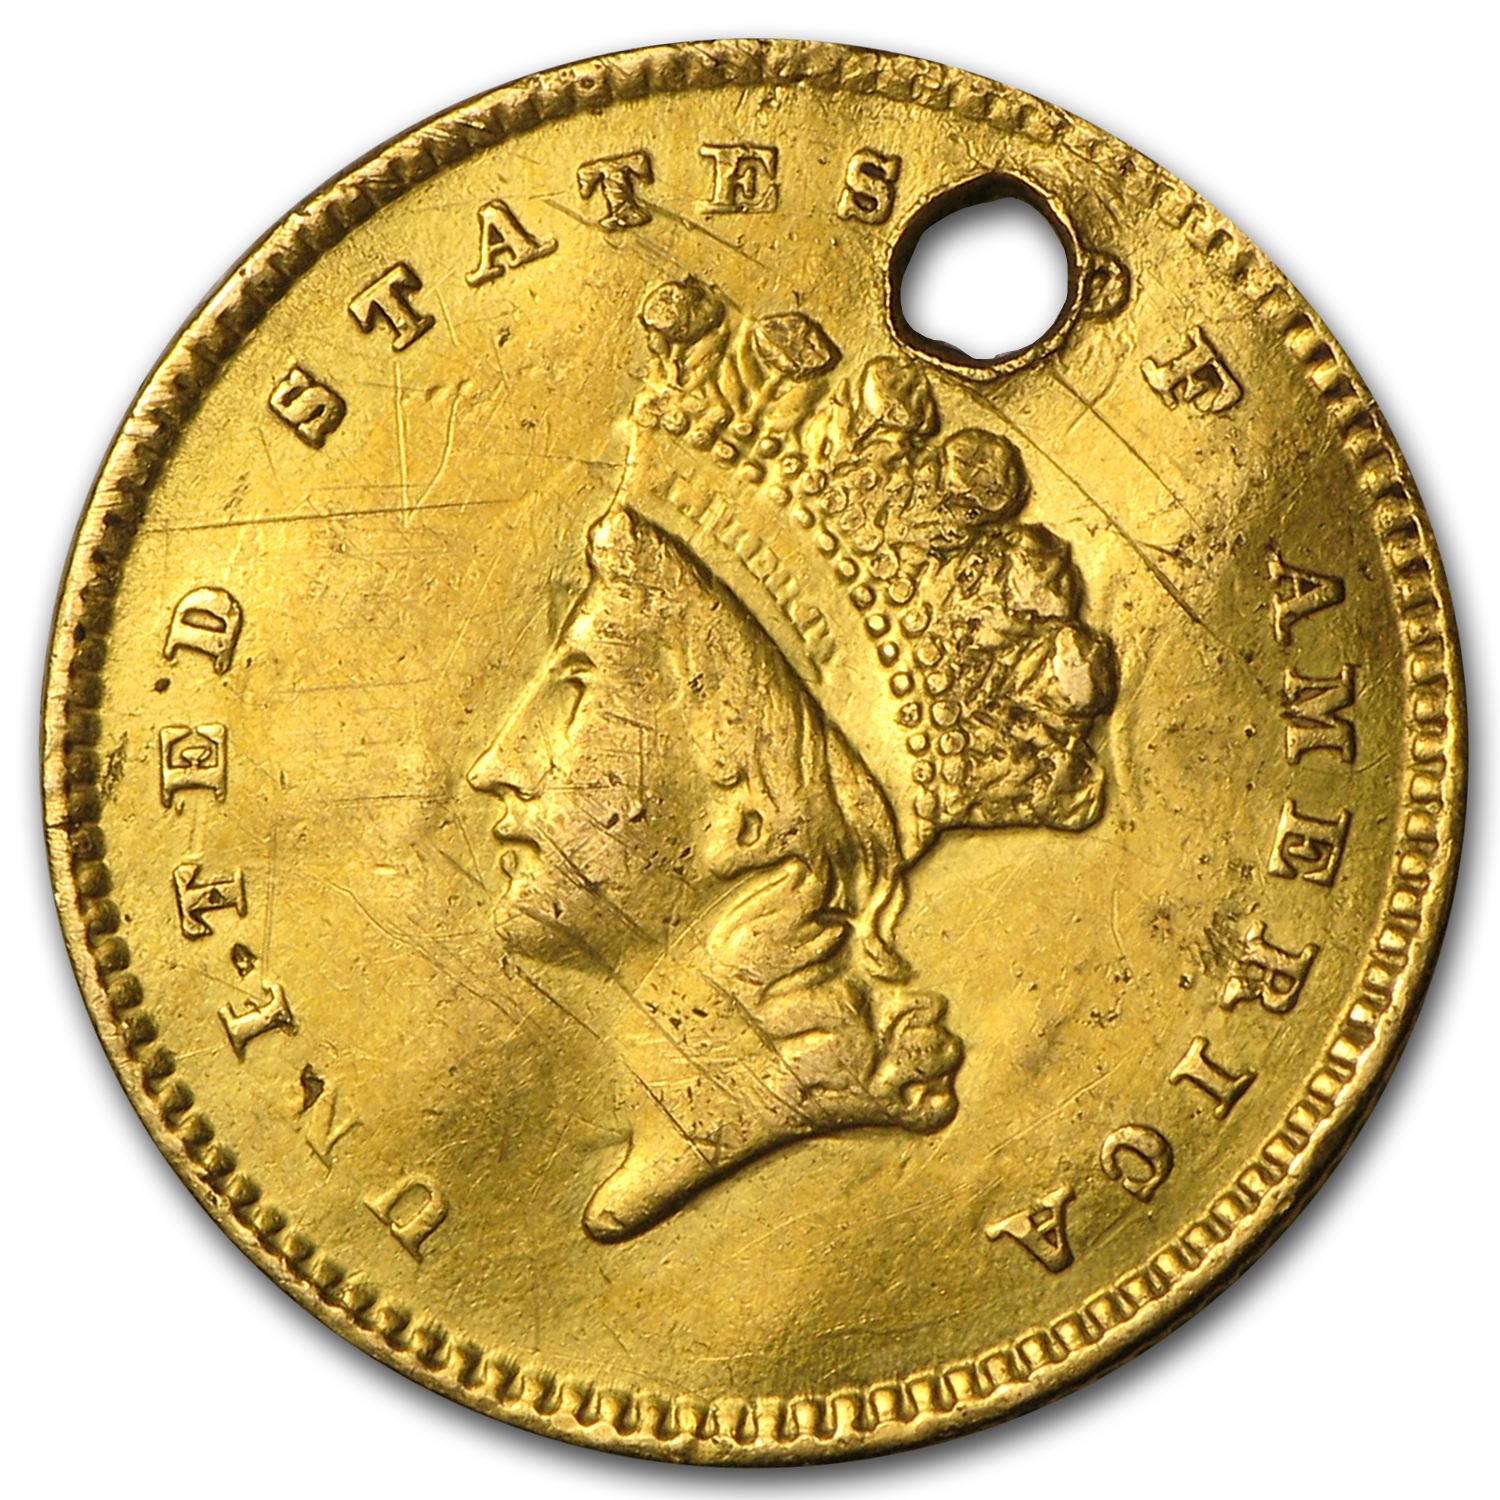 $1 Indian Head Gold - Type 2 - No Date Love Token - S E M